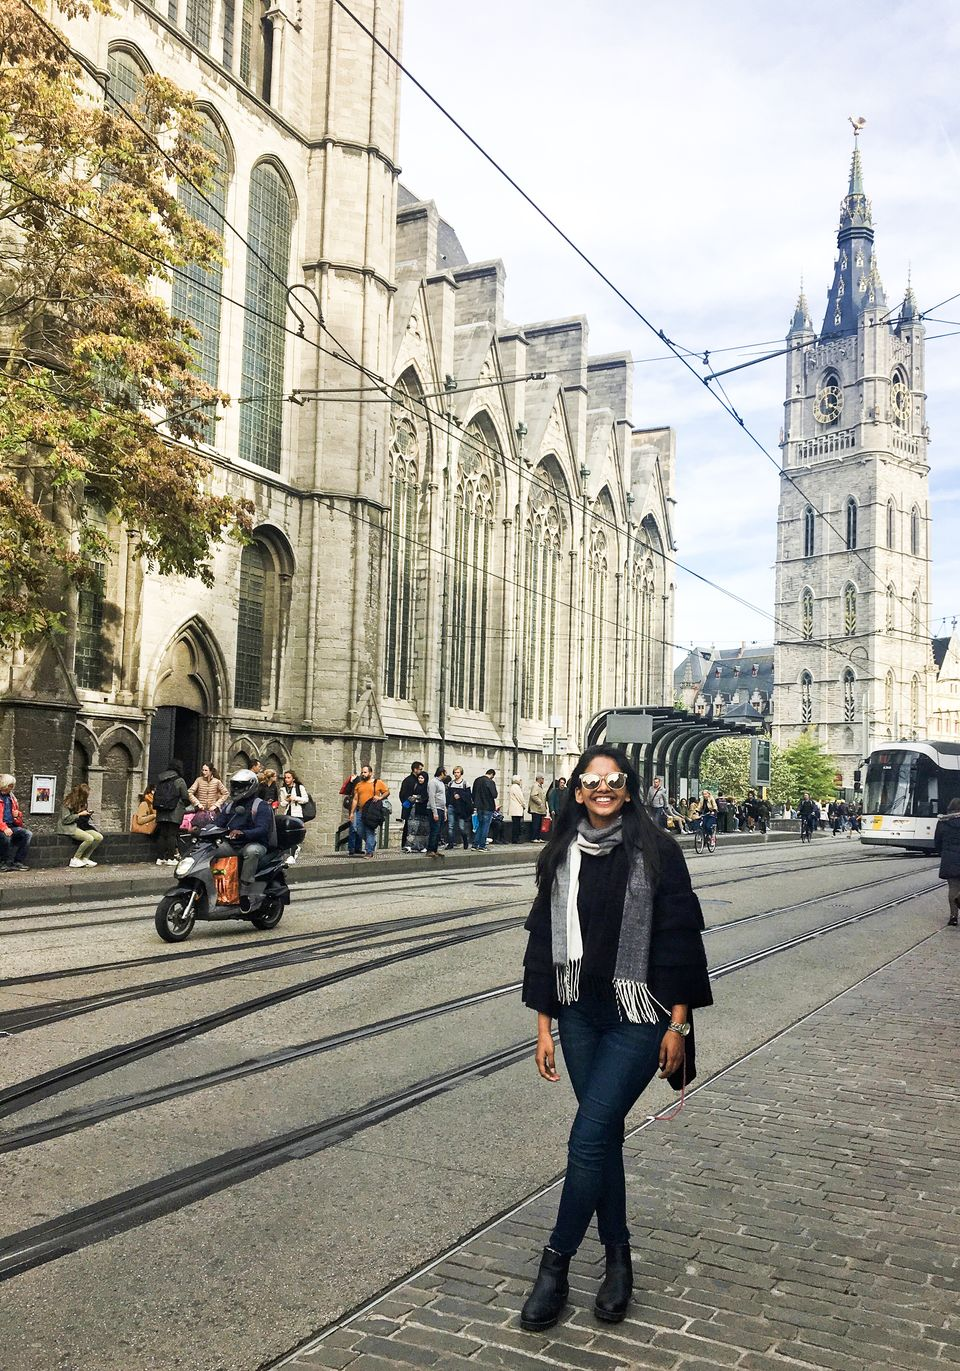 Photo of Ghent, Belgium by Ananya Ghosh